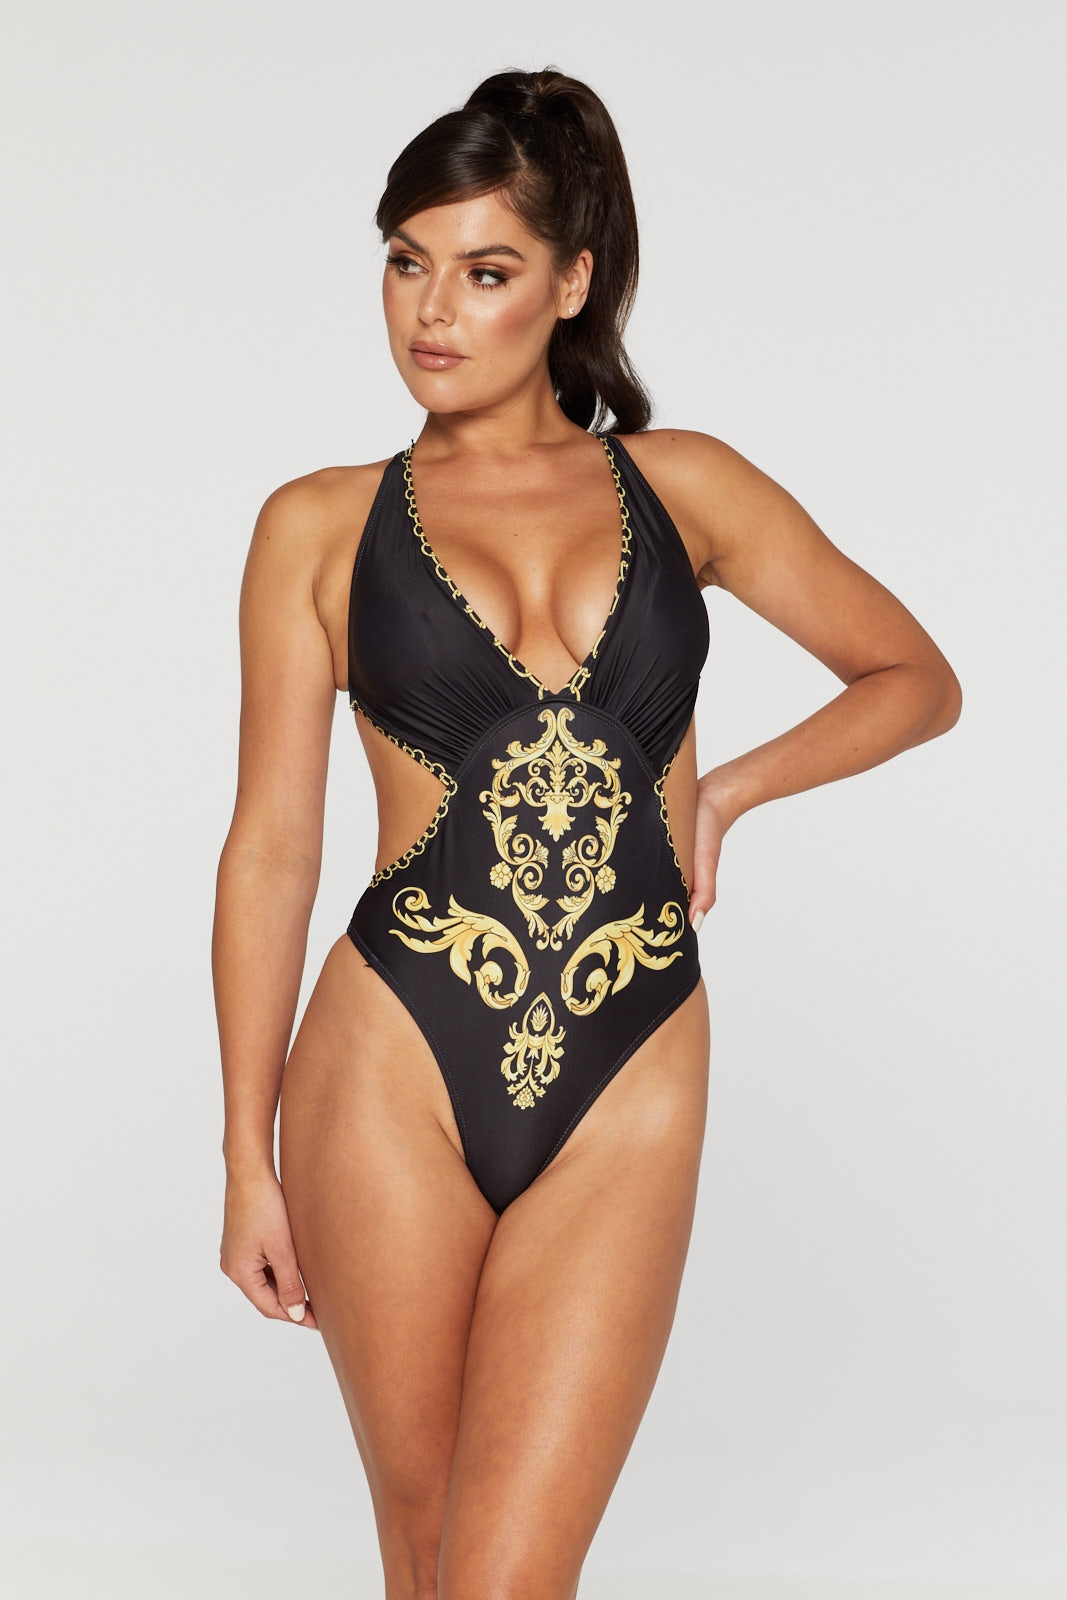 REG31 Black and Gold Printed Swimsuit